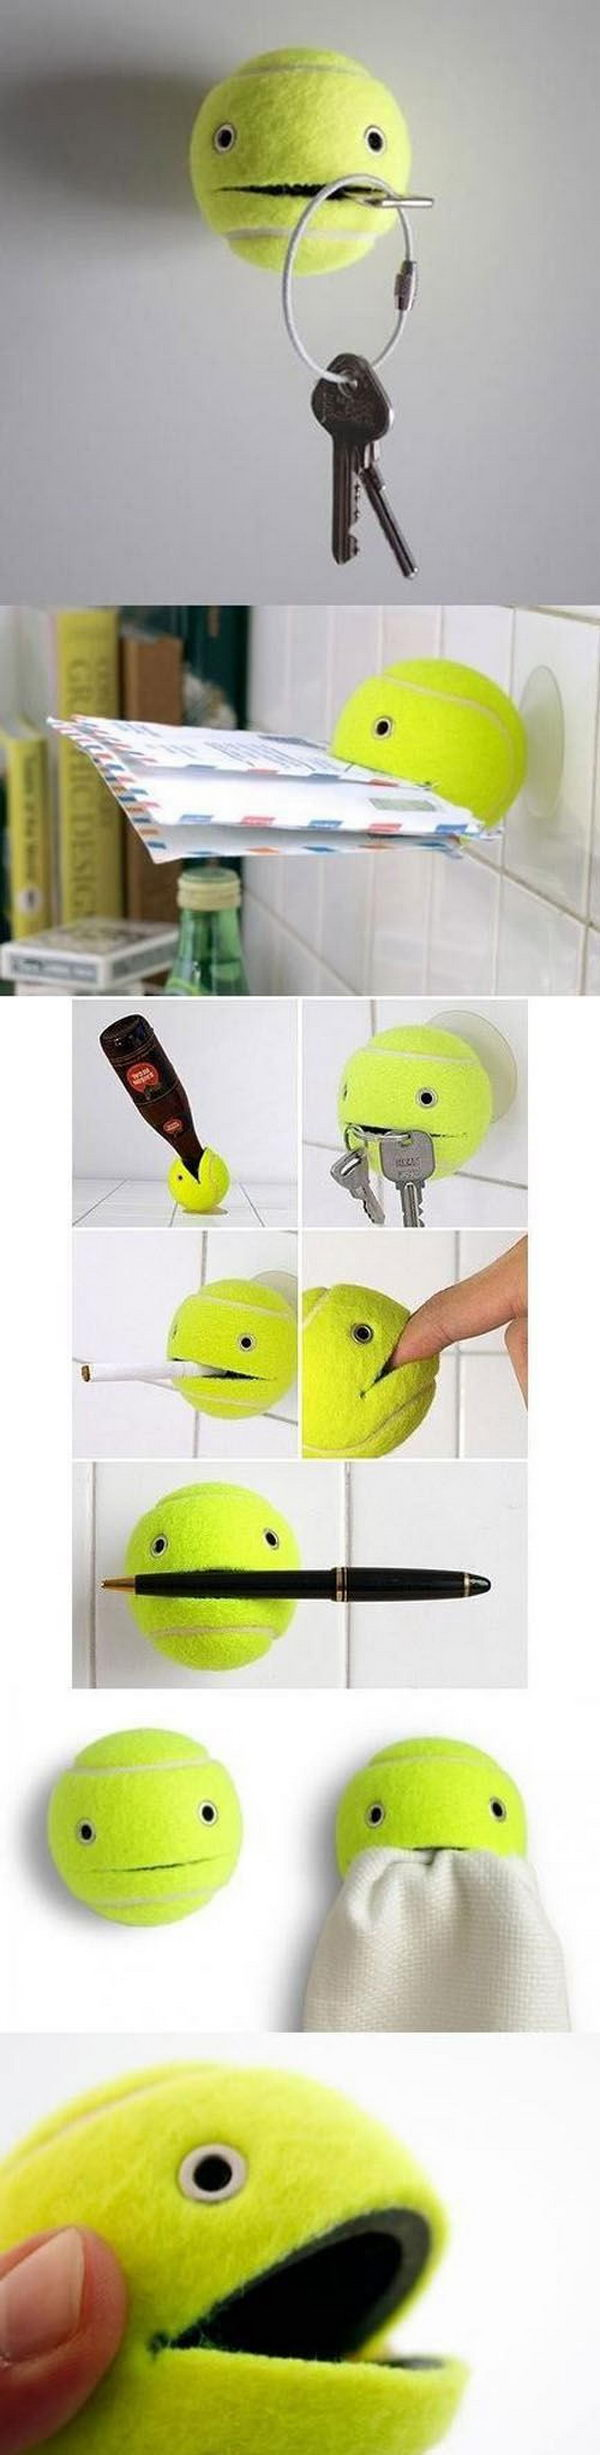 Tennis Ball as a key Holder. A genius idea to DIY a functional, funny and adorable key holder with a tennis ball. See the tutorial